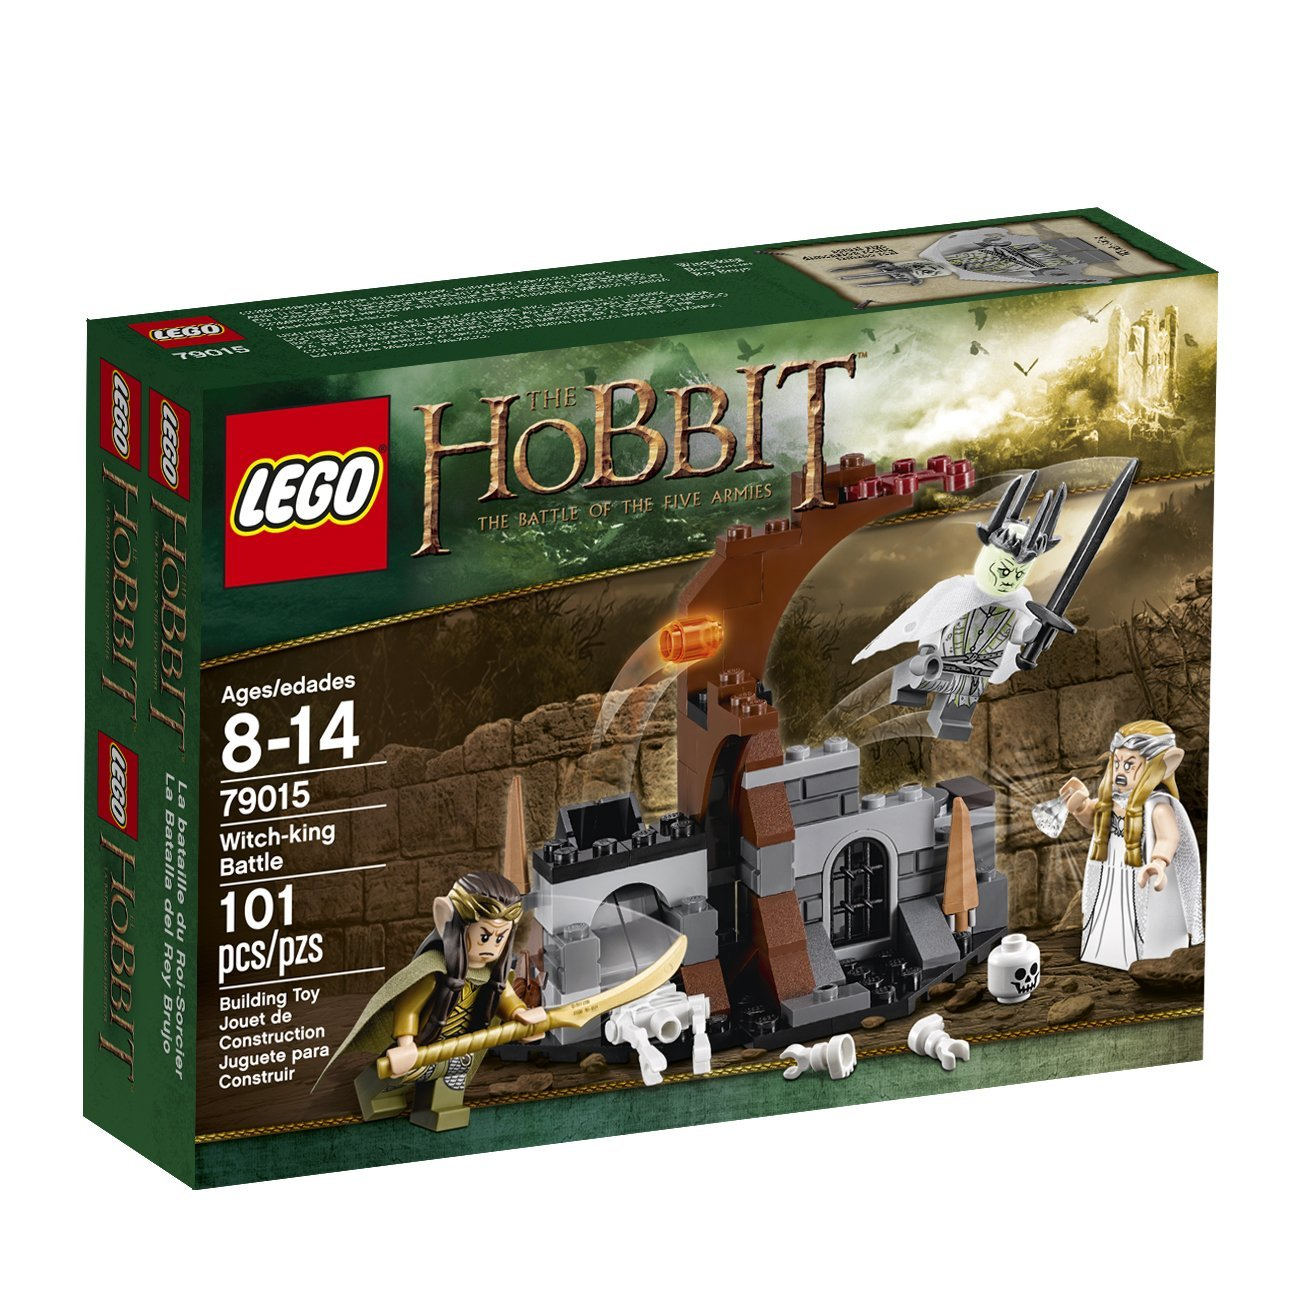 LEGO Hobbit 79015 Witch-king Battle